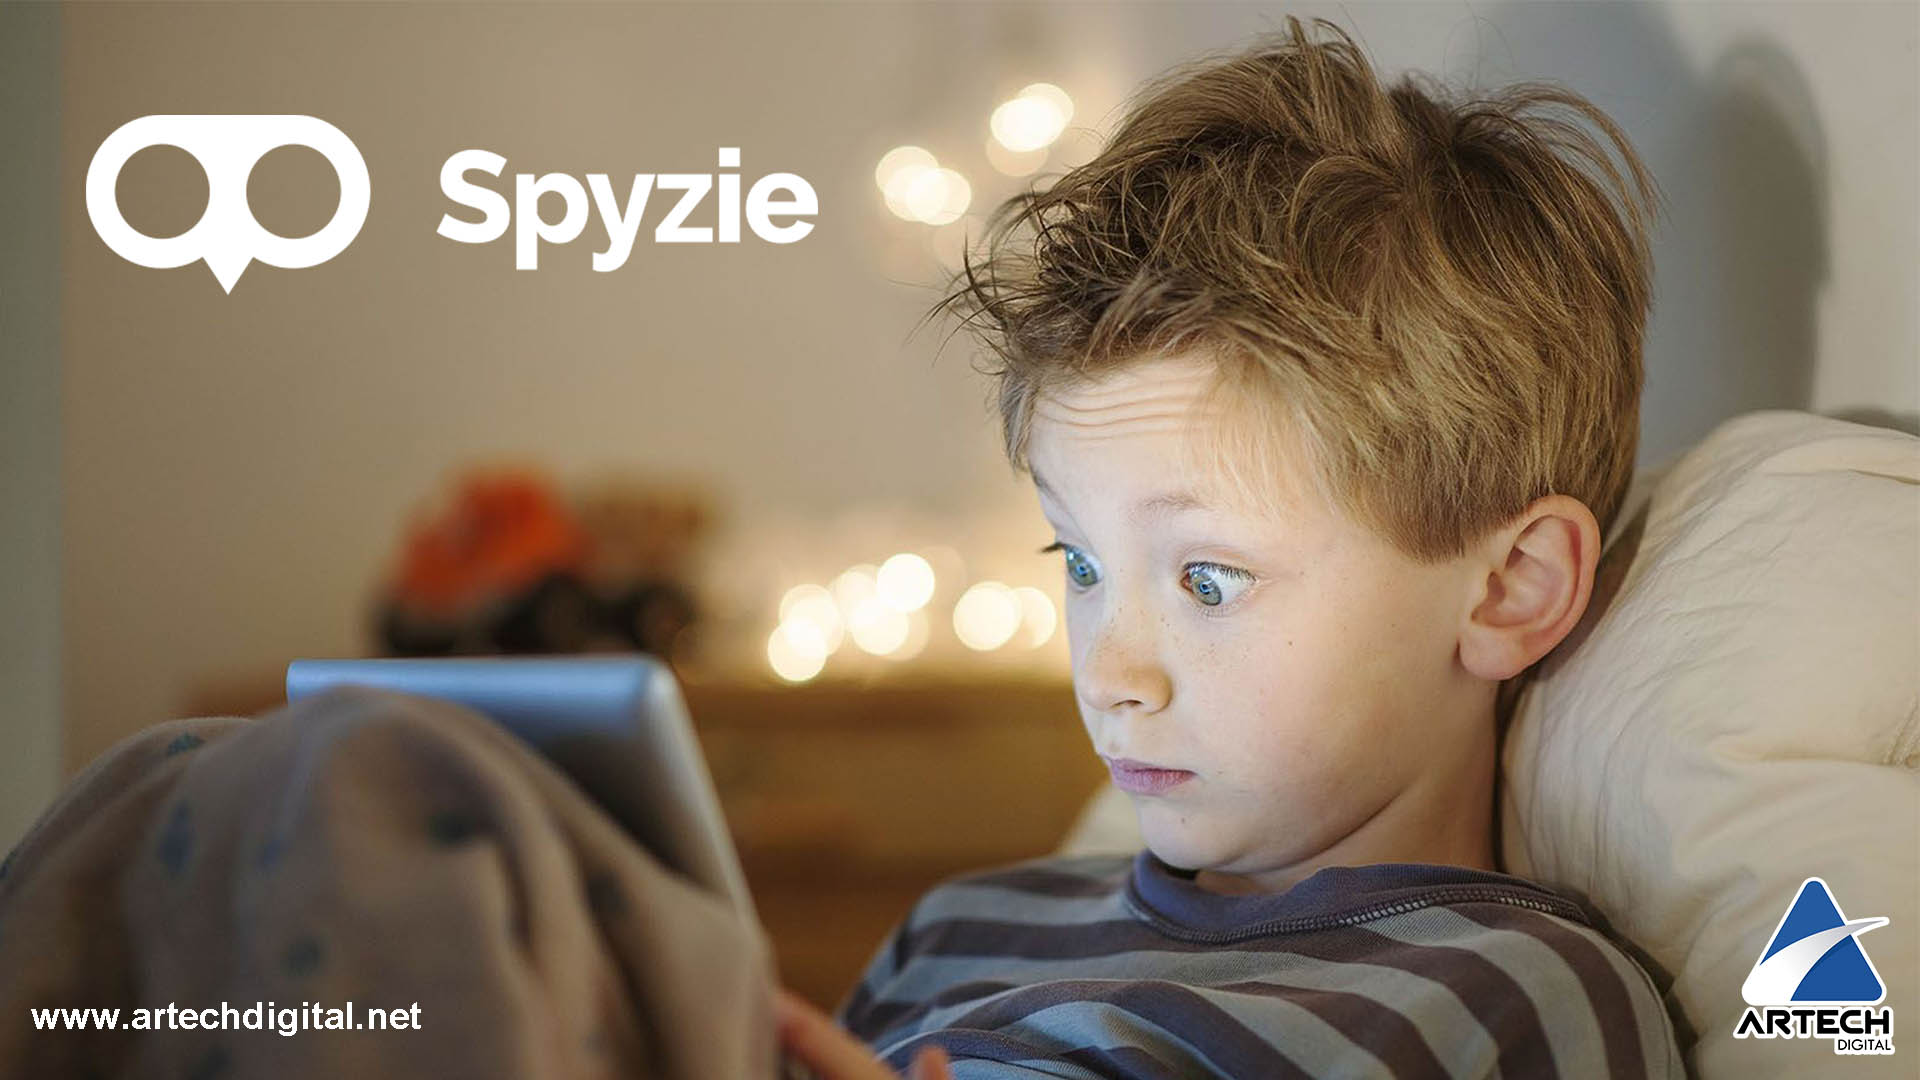 Take Care Of Your Children On The Internet With The New App